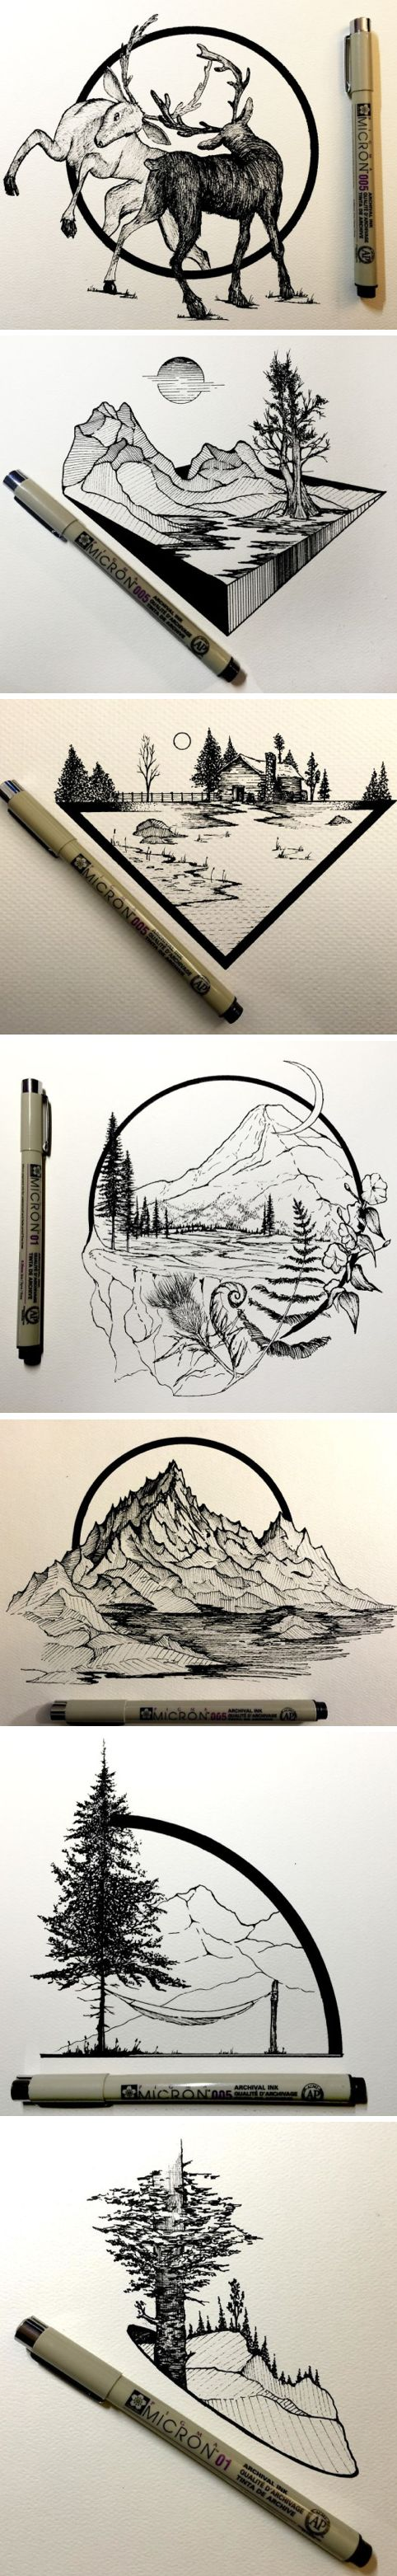 Daily Drawings by Derek Myers #illustration #drawing #art